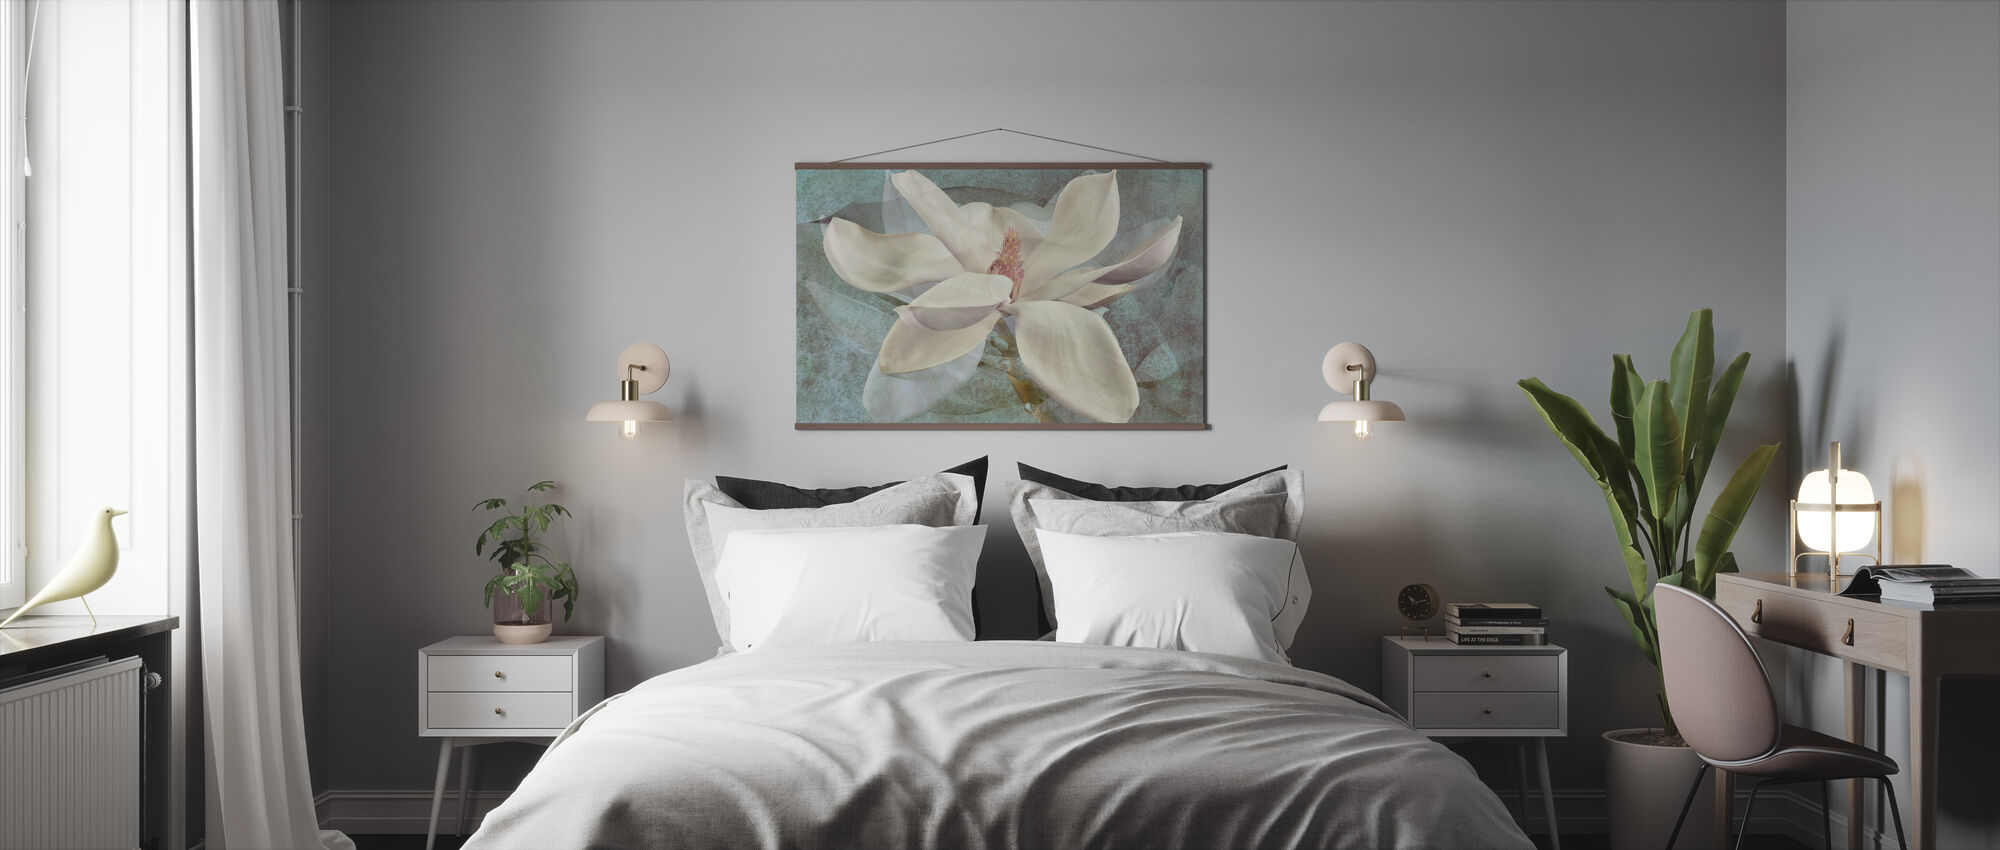 Magnolia Shades - Poster - Bedroom